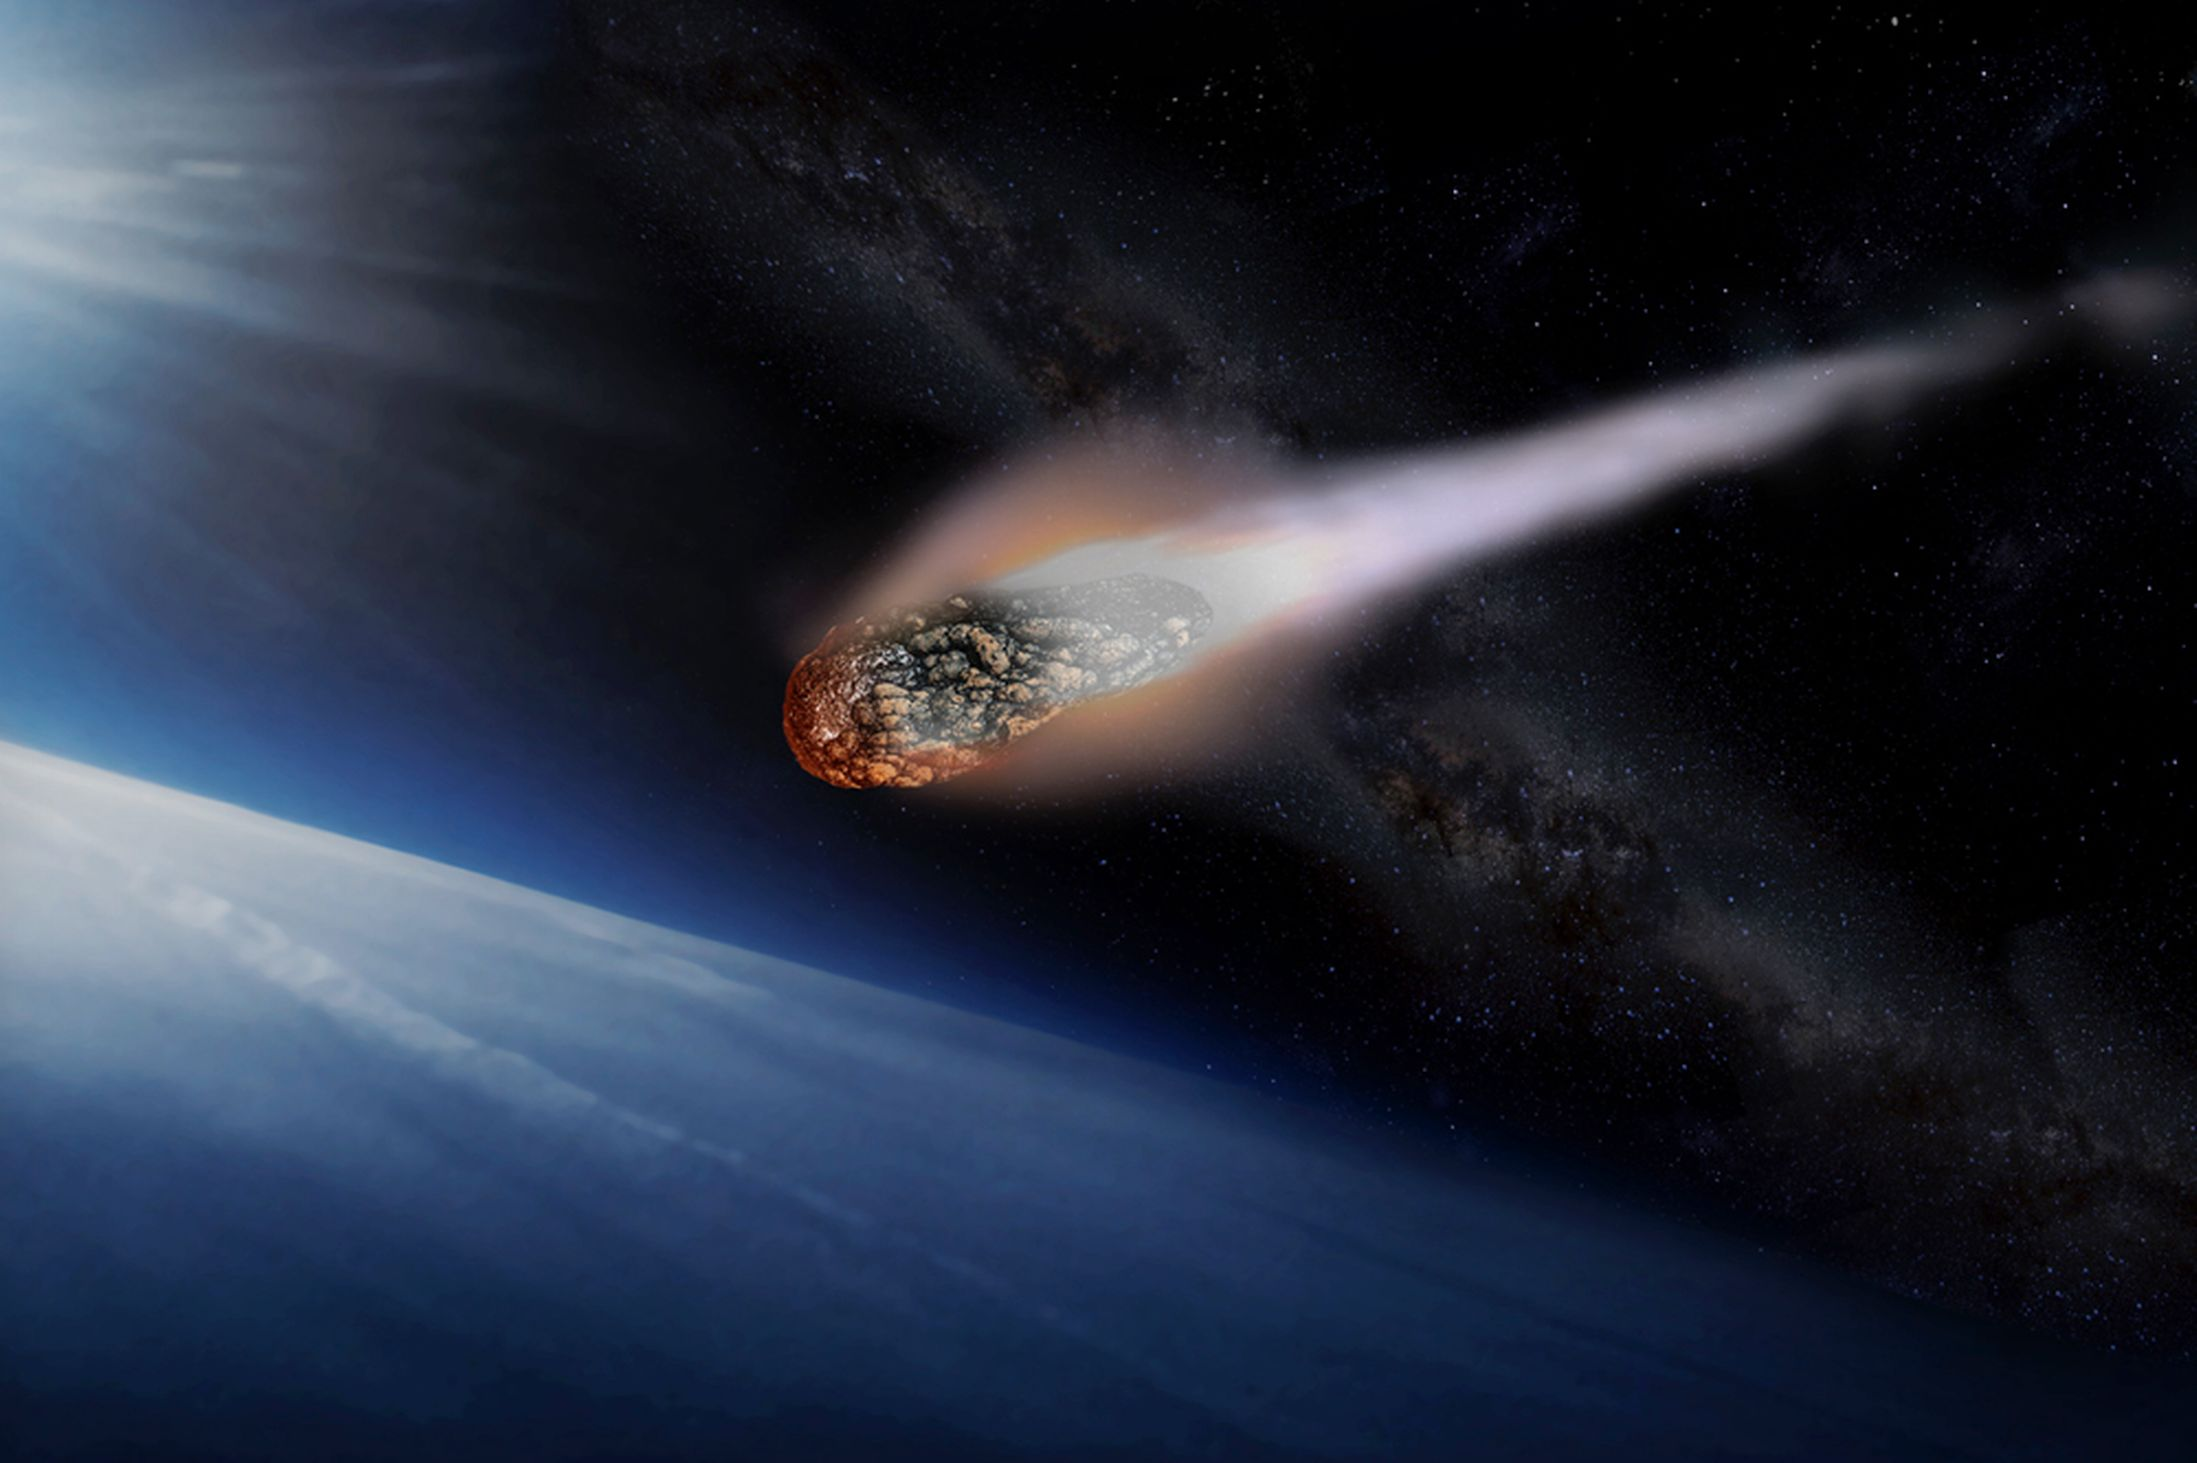 asteroid 1950 DA Earth 2880